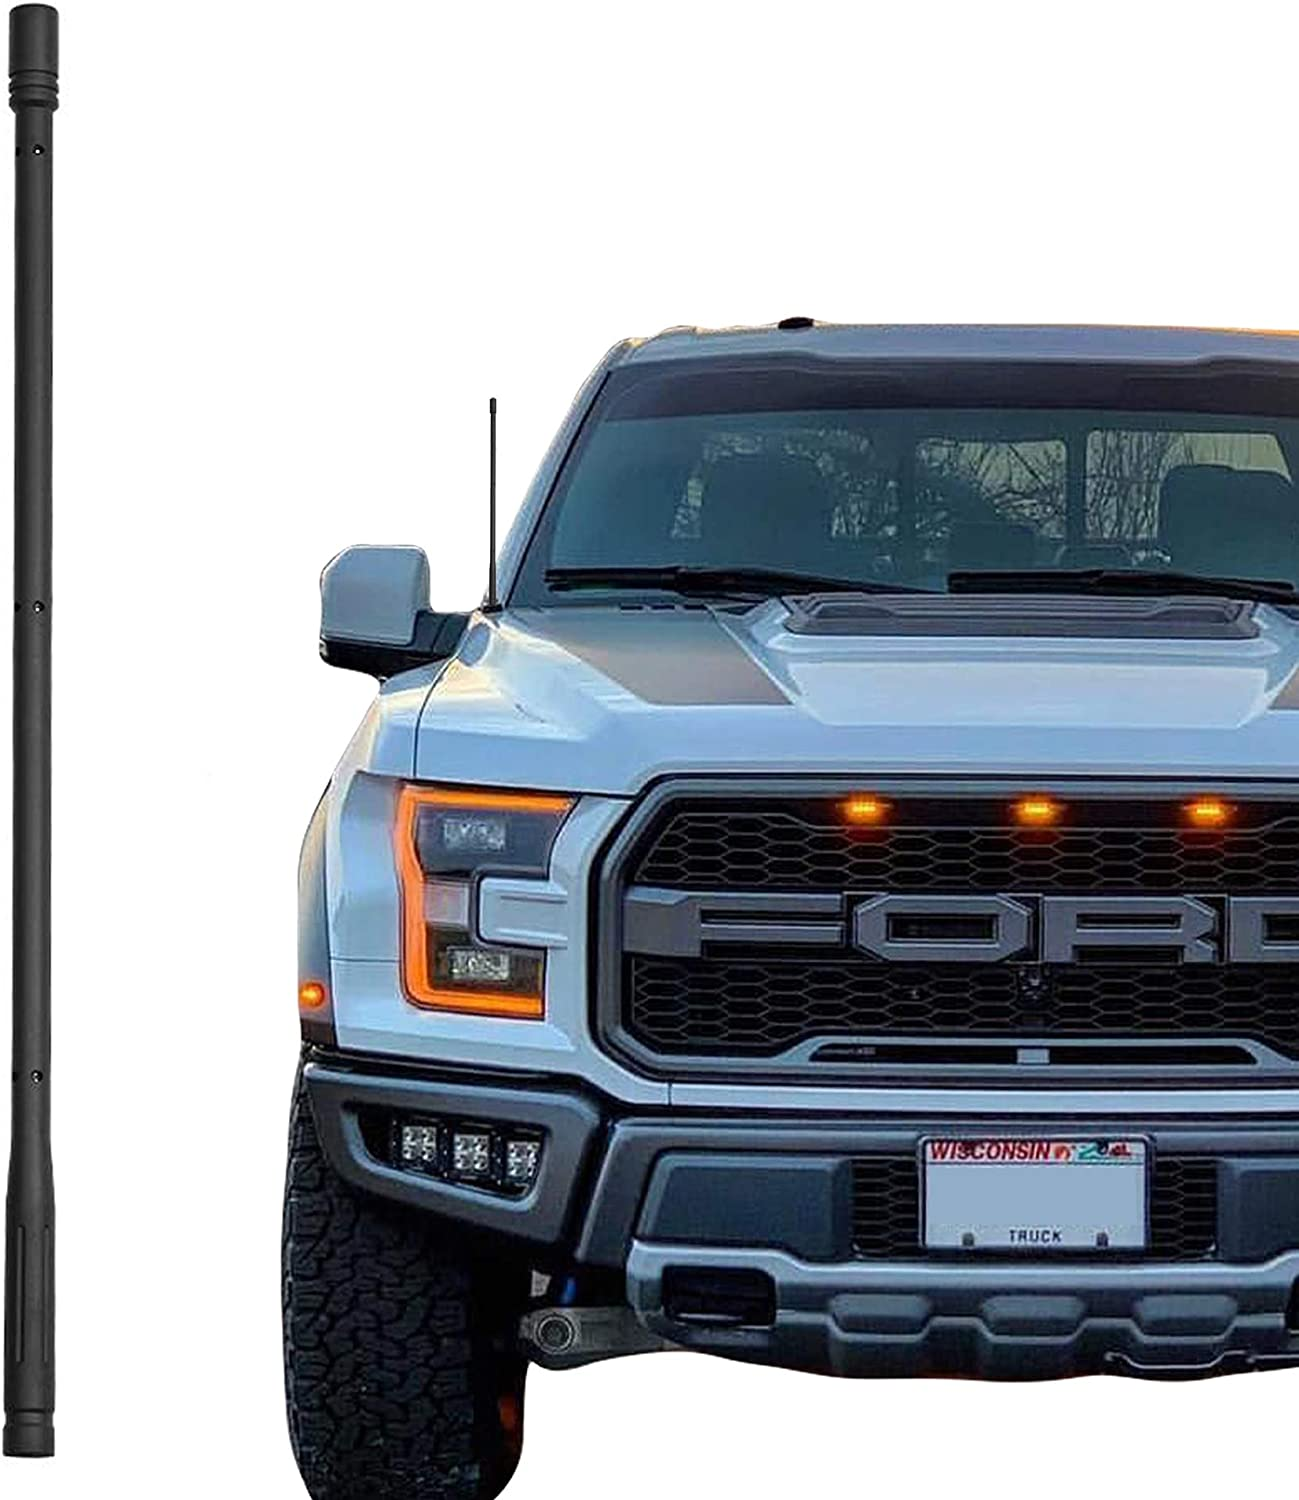 KSaAuto 13 Inch Antenna Compatible with Ford F150 2009-2020, Designed for Optimized FM/AM Reception